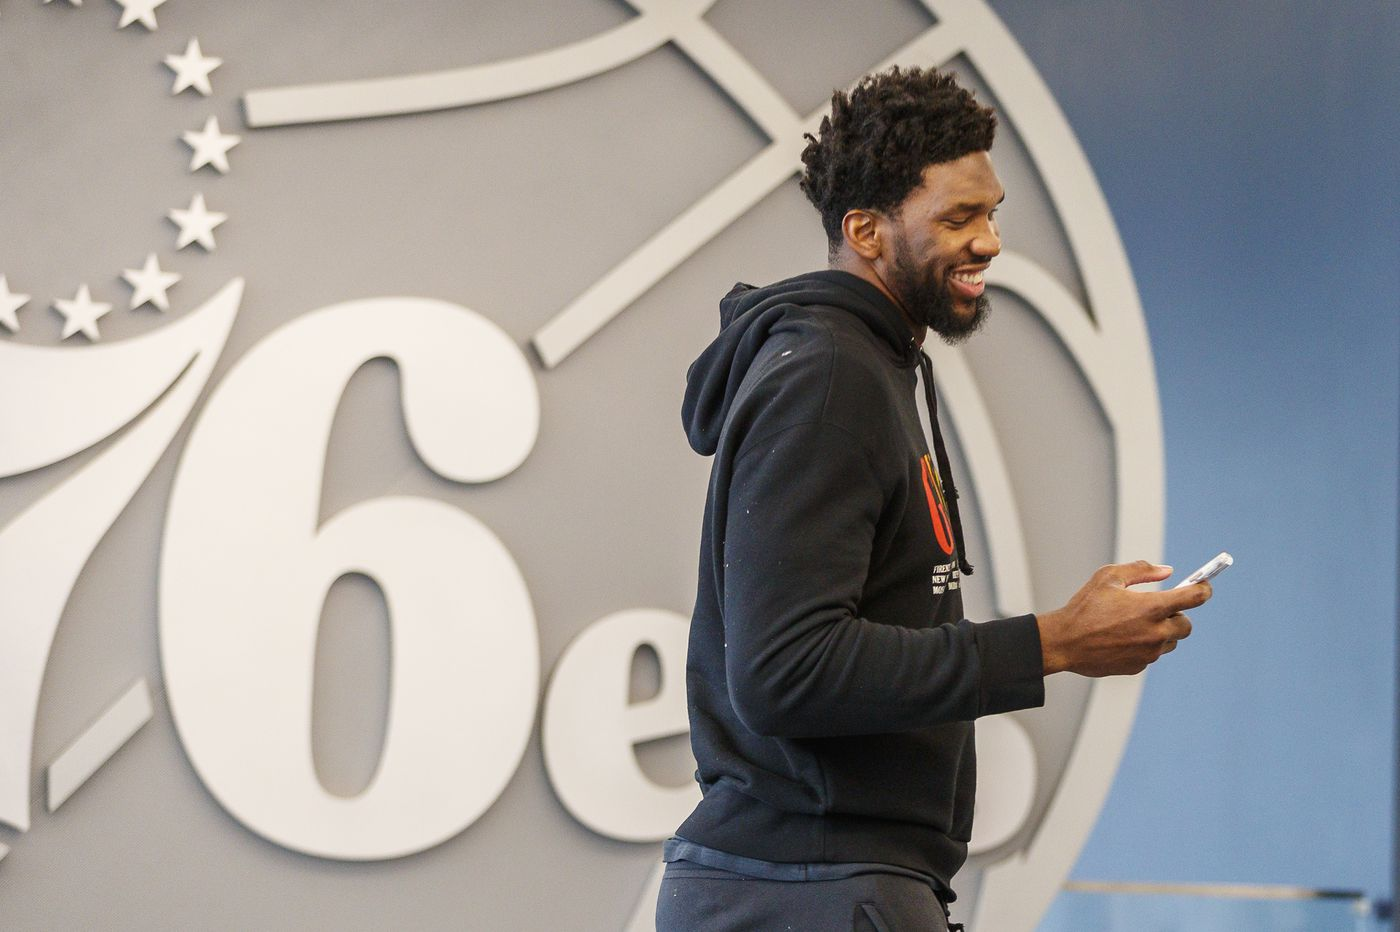 Sixers' Joel Embiid is trademarking 'The Process' and wants to start his own line of Shirley Temples